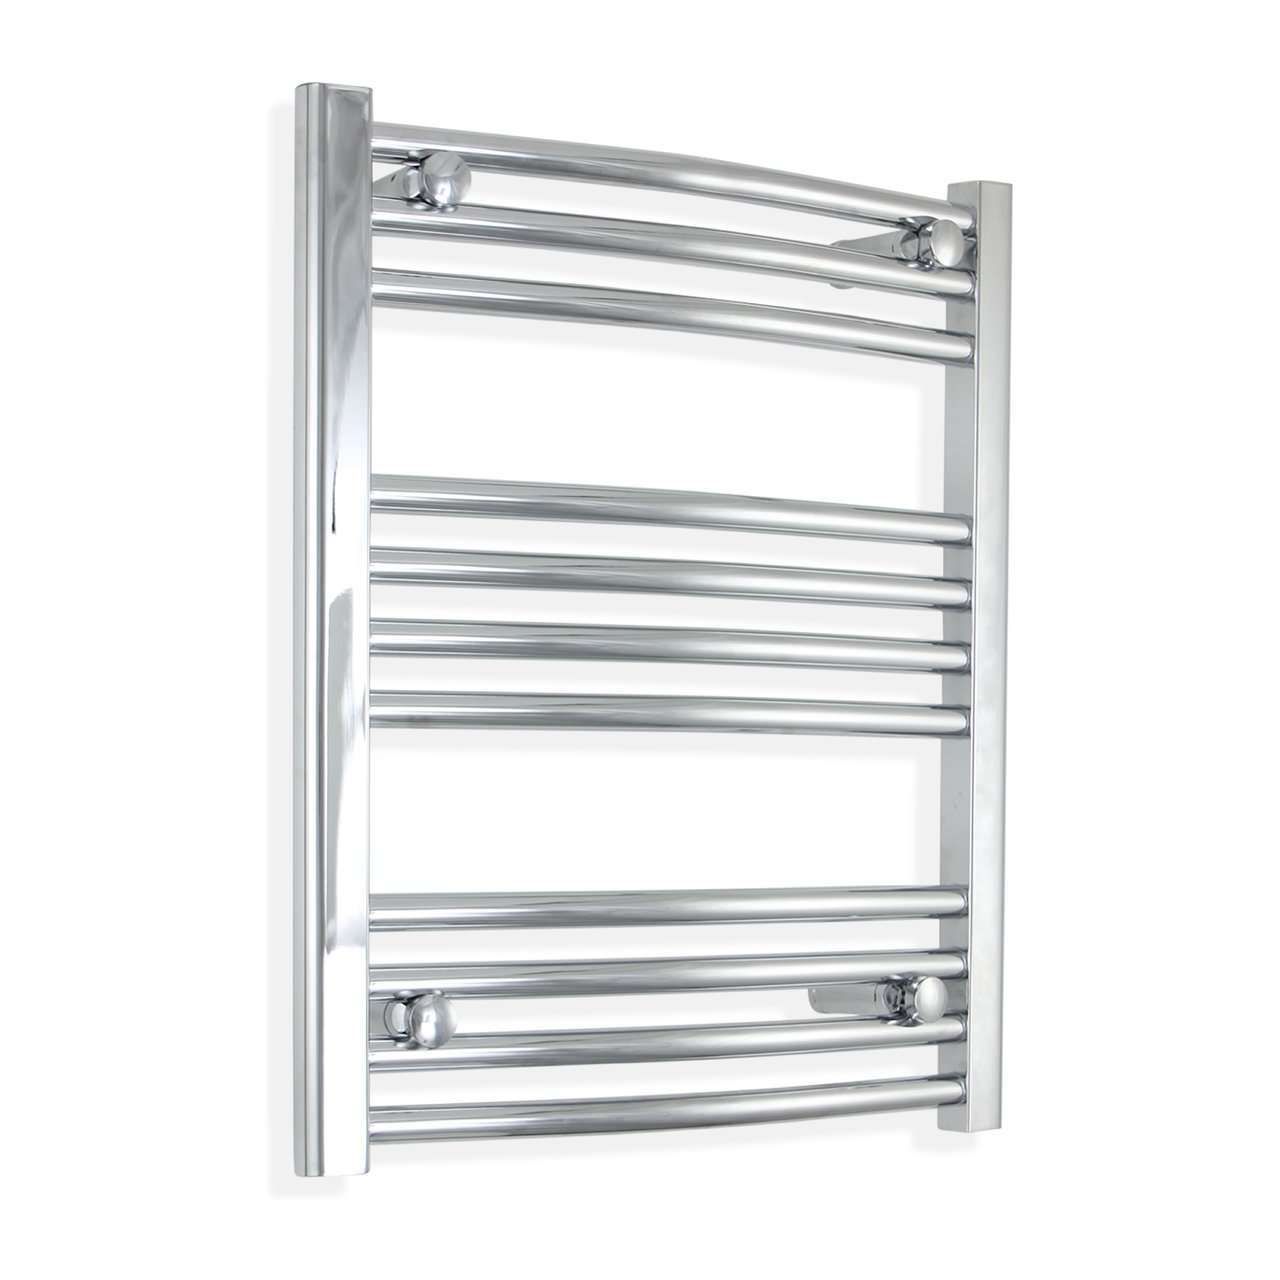 500mm Wide 600mm High Curved Chrome Heated Towel Rail Radiator HTR,Towel Rail Only